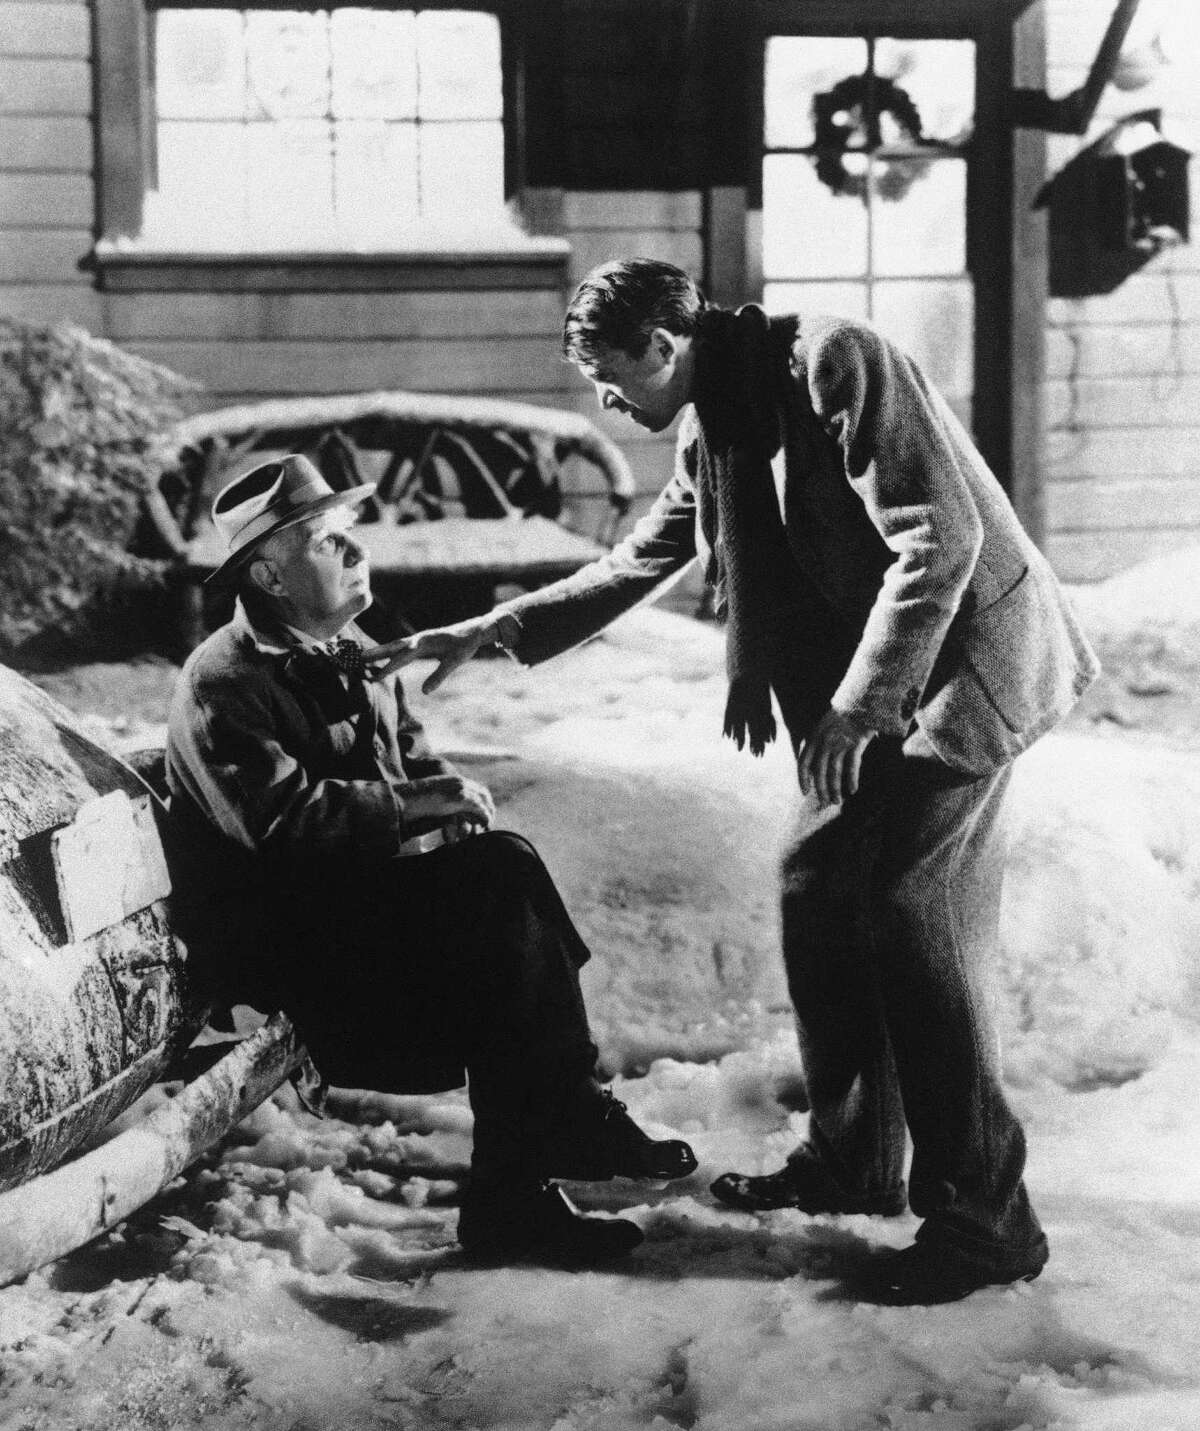 """In this undated file photo, Henry Travers as Clarence the Angel, left, and James Stewart as George Bailey are seen in a scene from the 1946 film """"It's A Wonderful Life."""" Folks in Seneca Falls, N.Y., think Bailey's make-believe hometown, Bedford Falls in the movie, was heavily inspired by their upstate town. This cannot be proven, and director Frank Capra never confirmed such a connection, but that hasn't stopped locals in Seneca Falls from celebrating the beloved movie every December. (AP Photo, File) ORG XMIT: NYR201"""